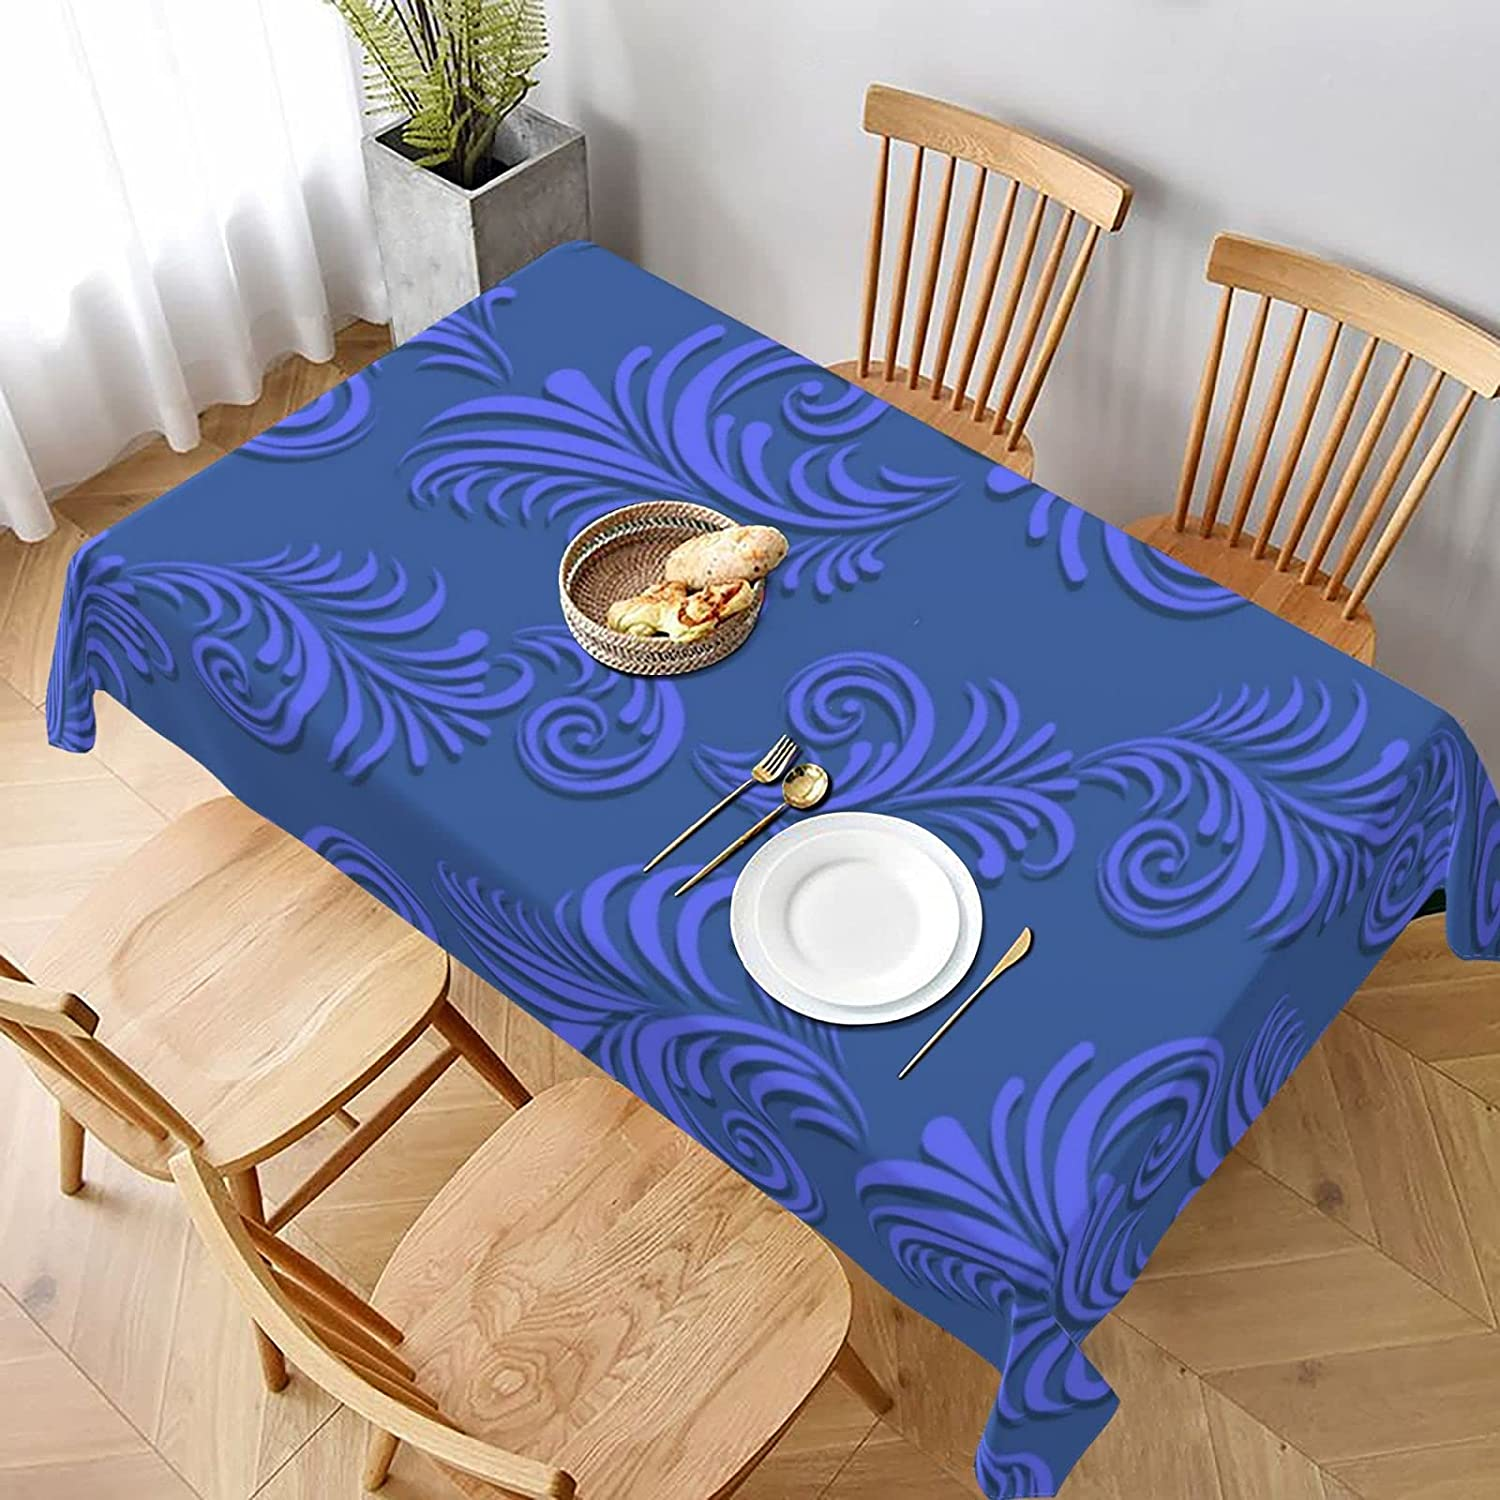 Volumetric Floral Stain Resistant Table Washable Max 46% OFF and Albuquerque Mall Spillproof